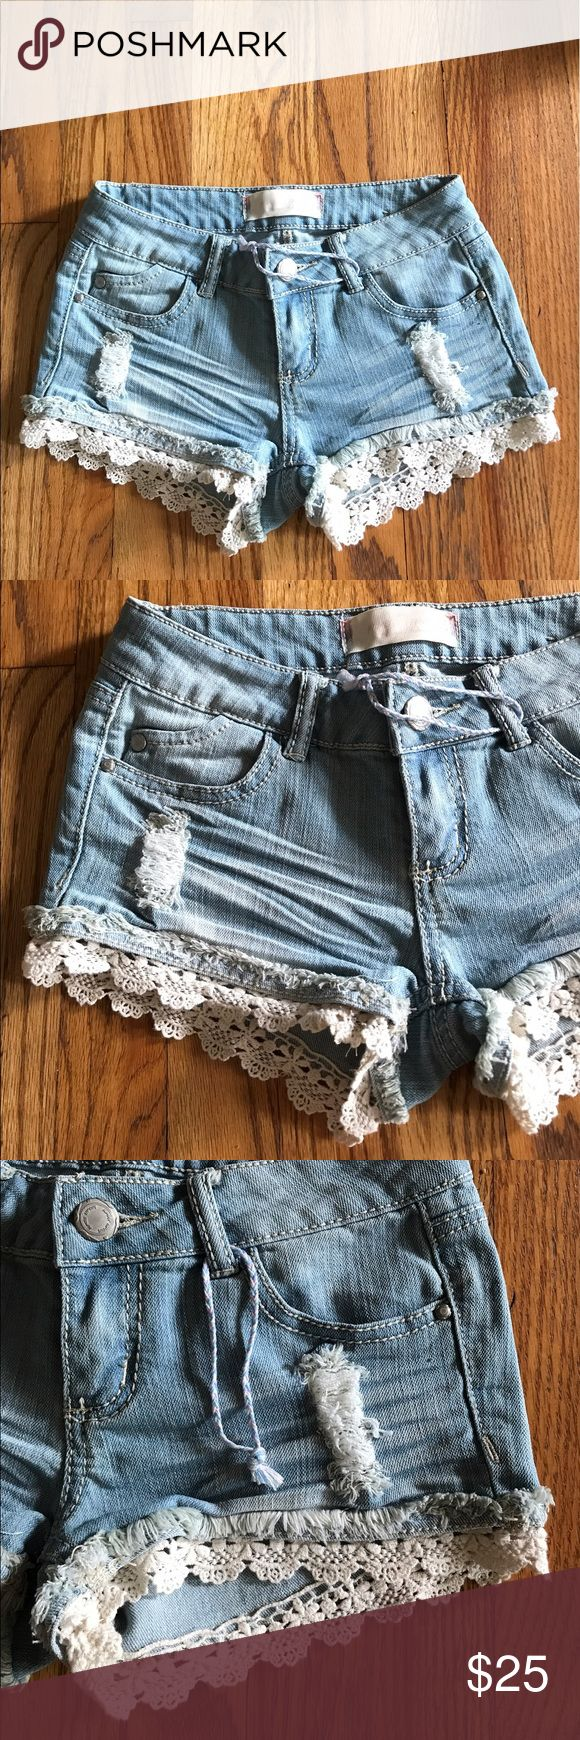 Almost Famous Light Wash Lace Hem Shorts Size 0 💕 Super cute Light Wash Slightly Distressed Soft Jean Shorts with Lace Hem. Barely worn! Great condition! Stretchy Size 1 (fit like a 0). So cute for Summer! 💕 Almost Famous Shorts Jean Shorts